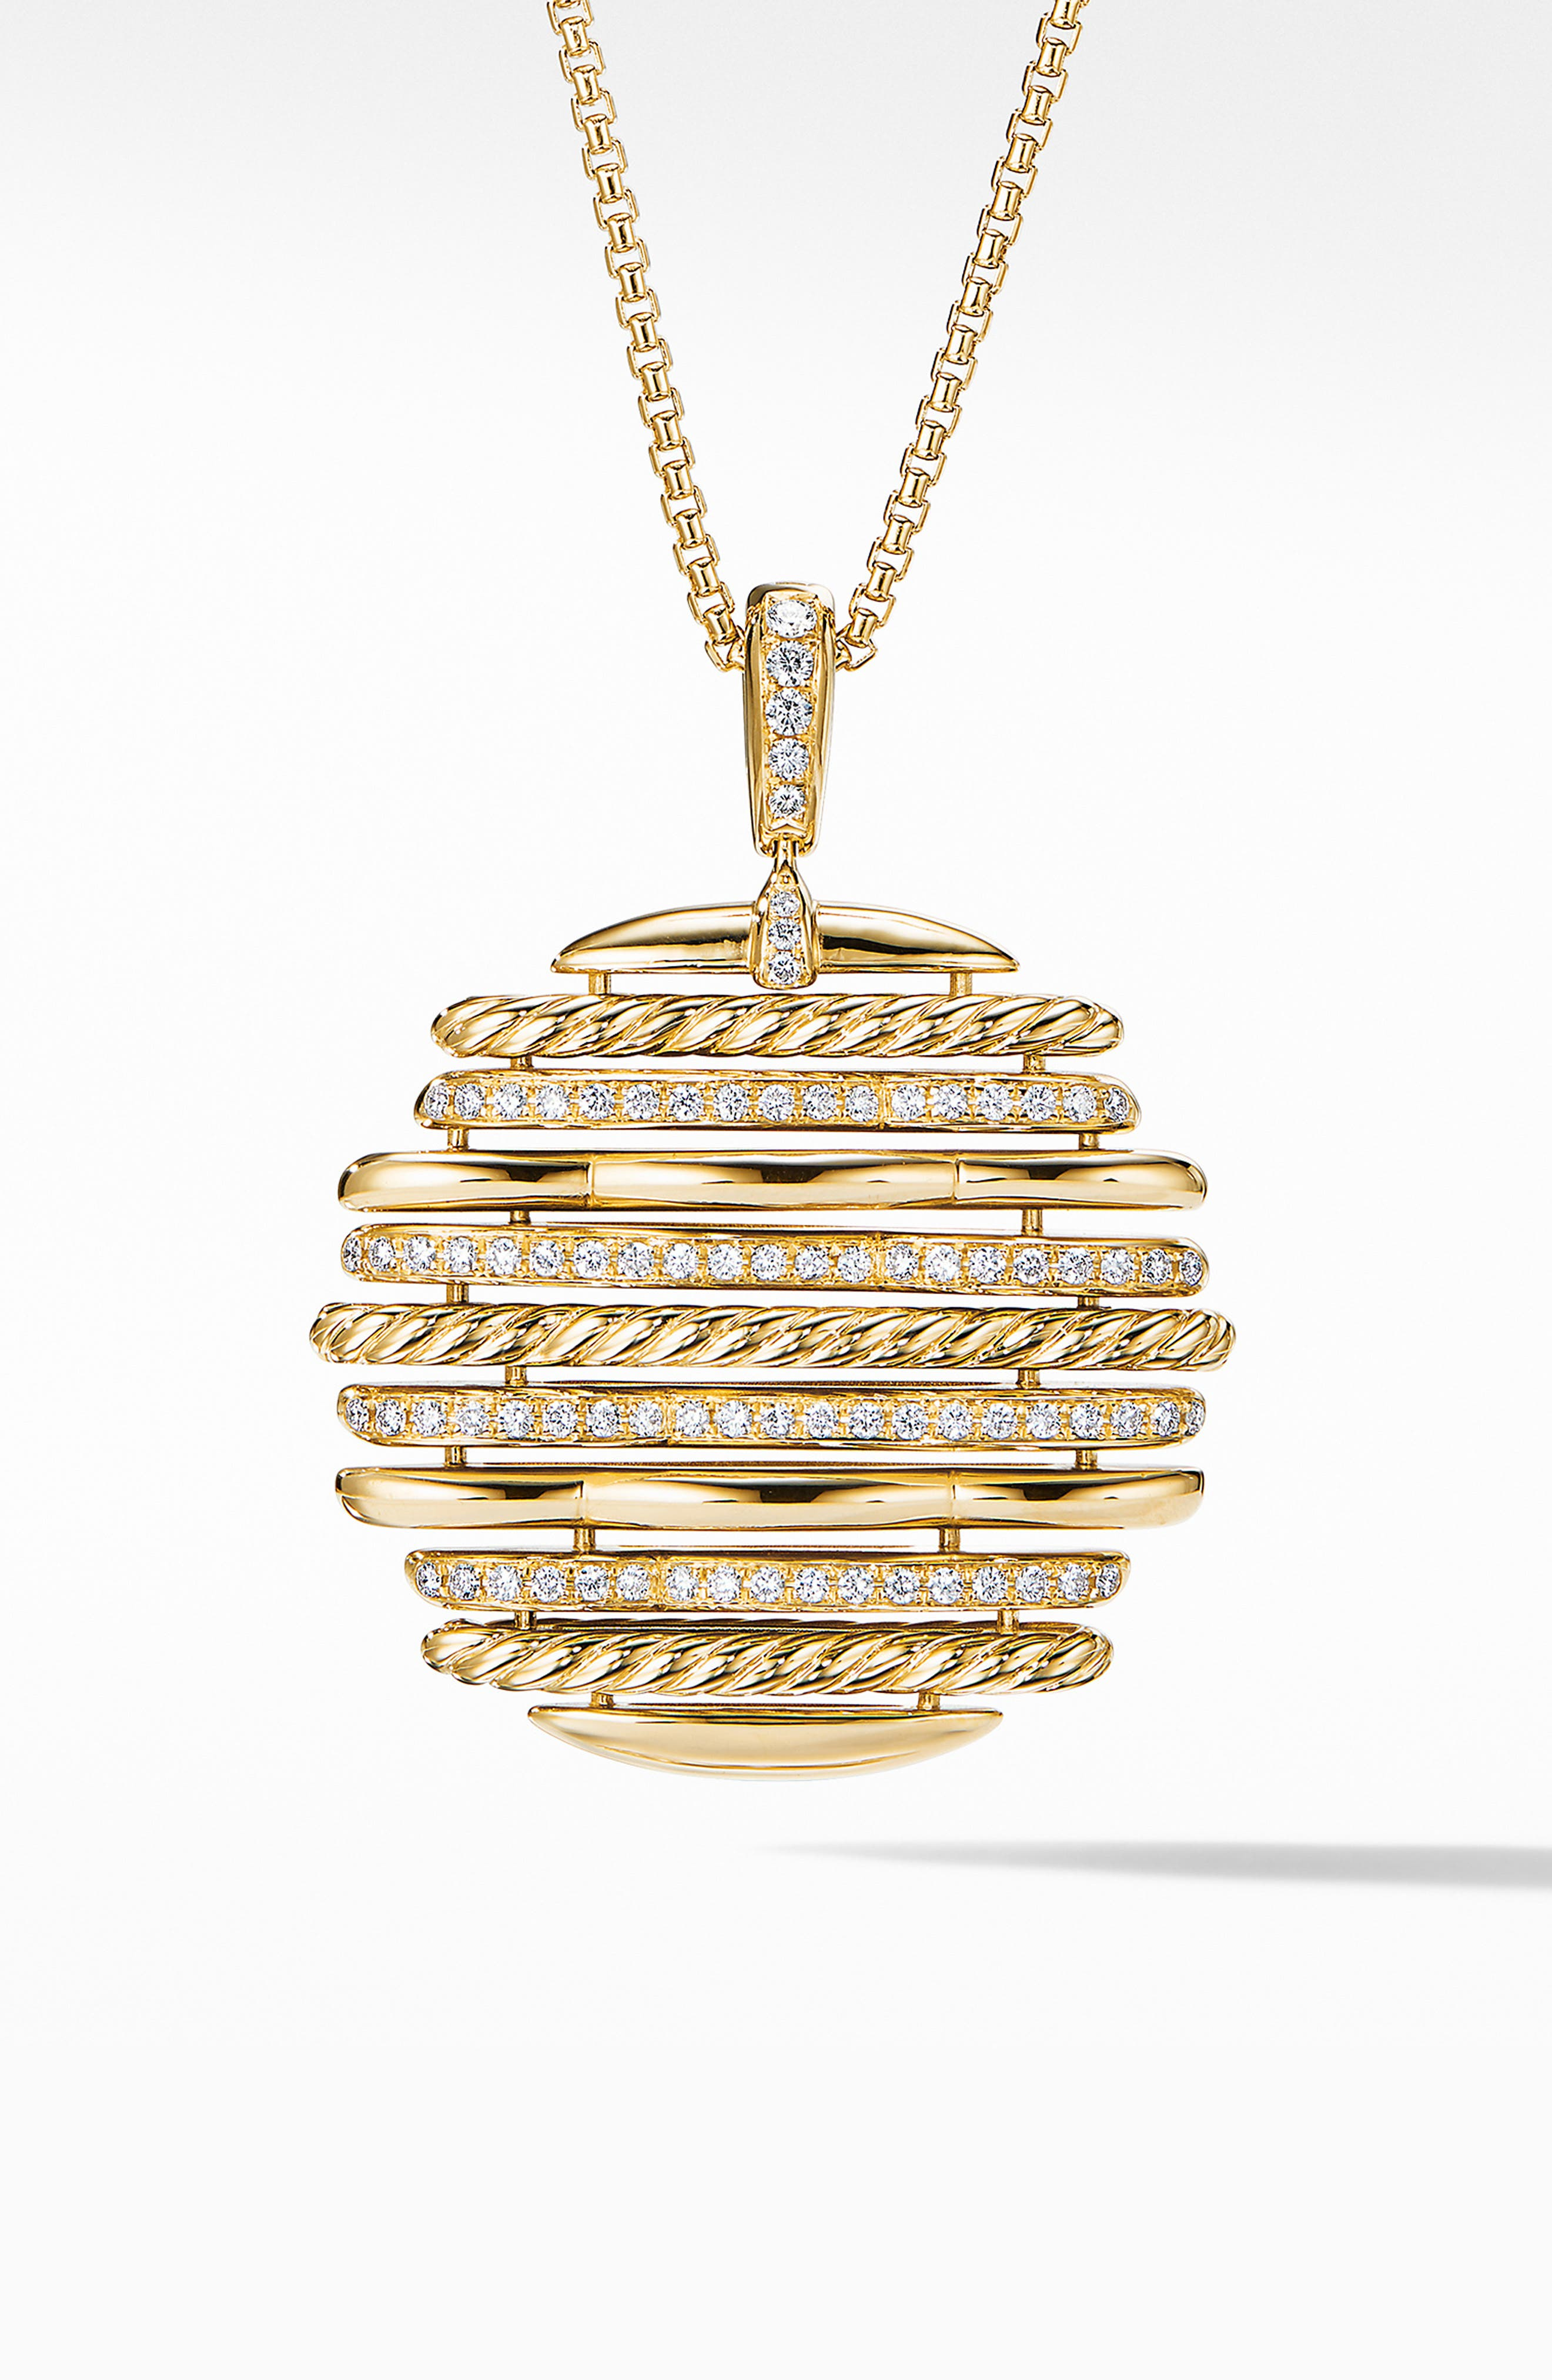 Tides Pendant Necklace in 18K Yellow Gold with Diamonds,                             Main thumbnail 1, color,                             GOLD/ DIAMOND